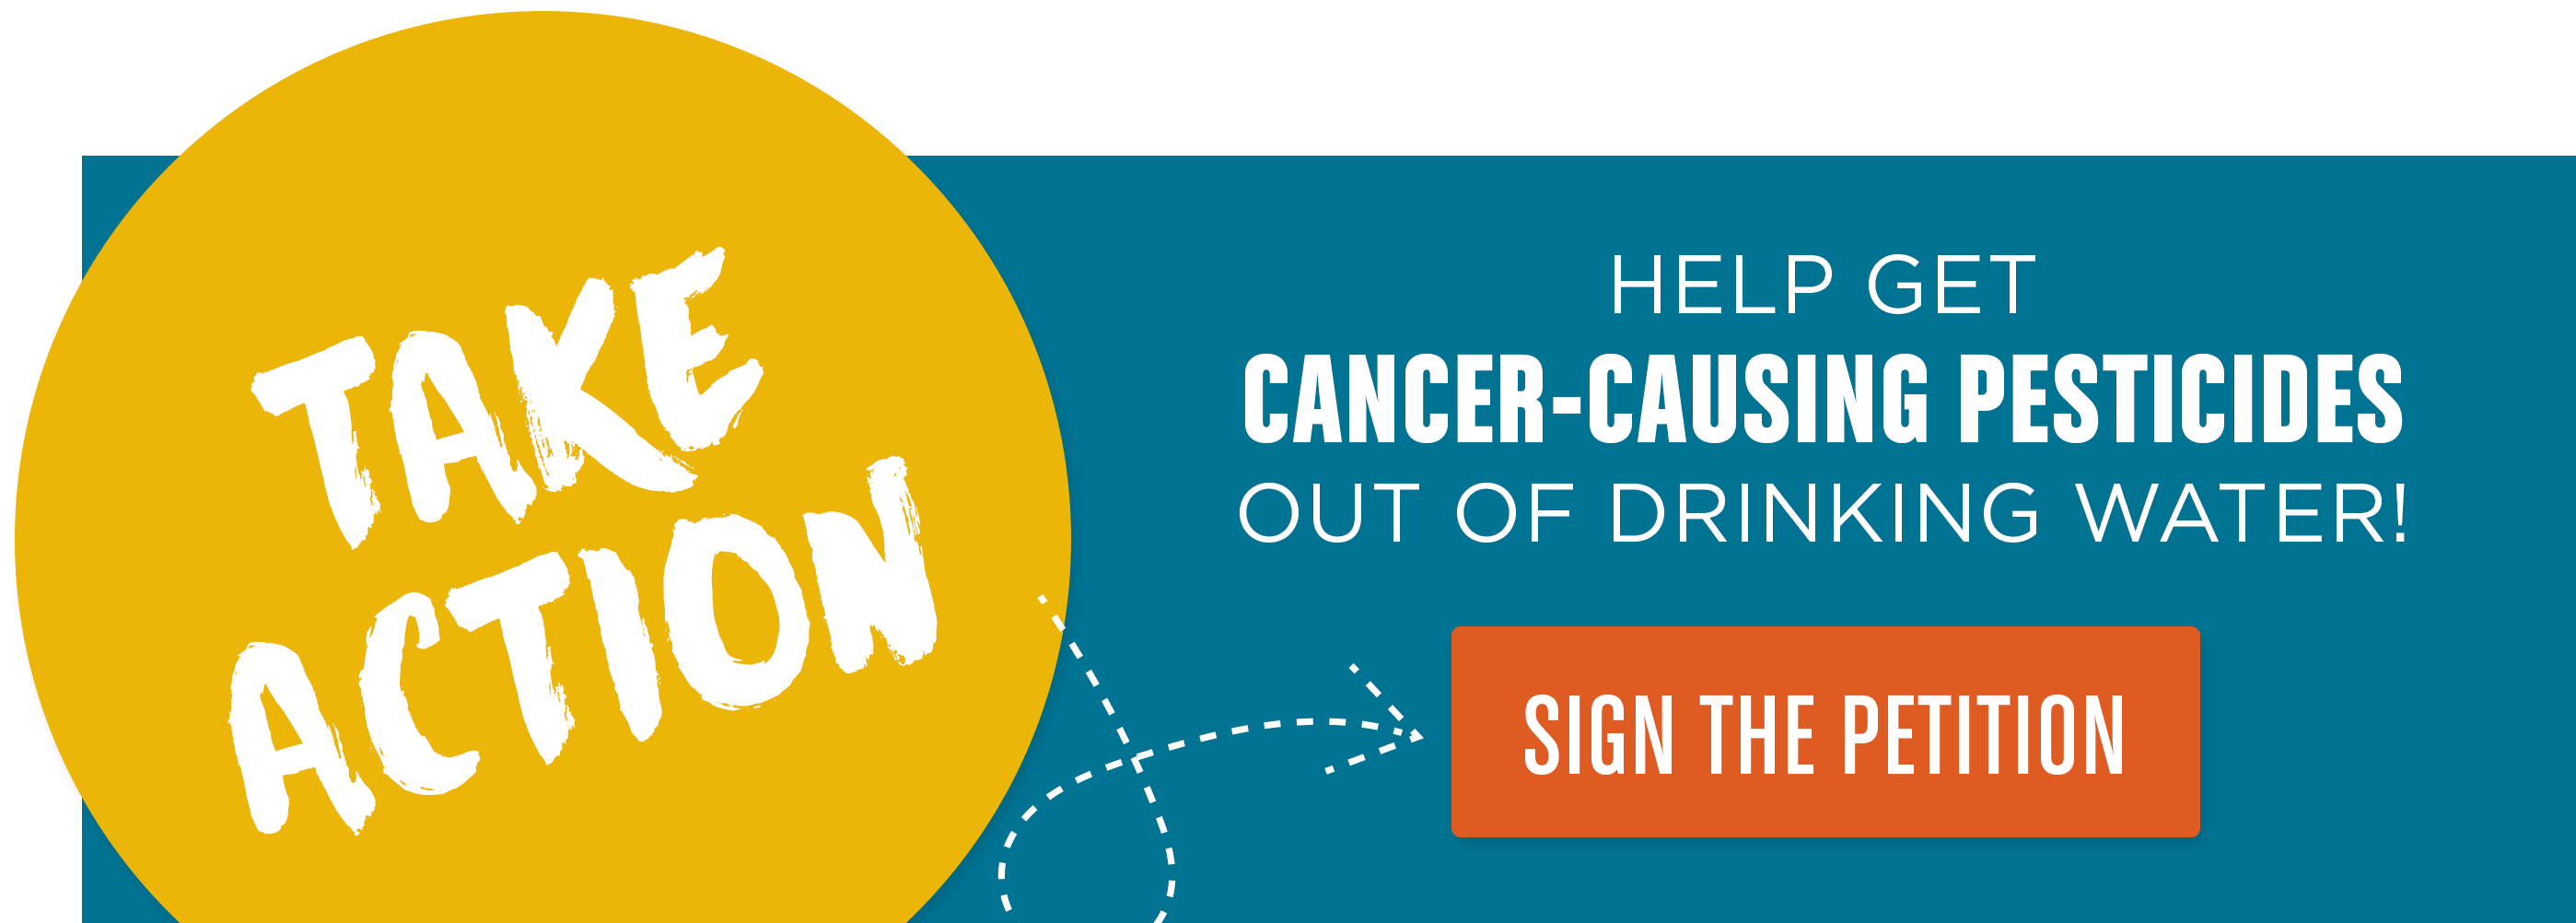 Take Action to help get cancer-causing pesticides out of drinking water!